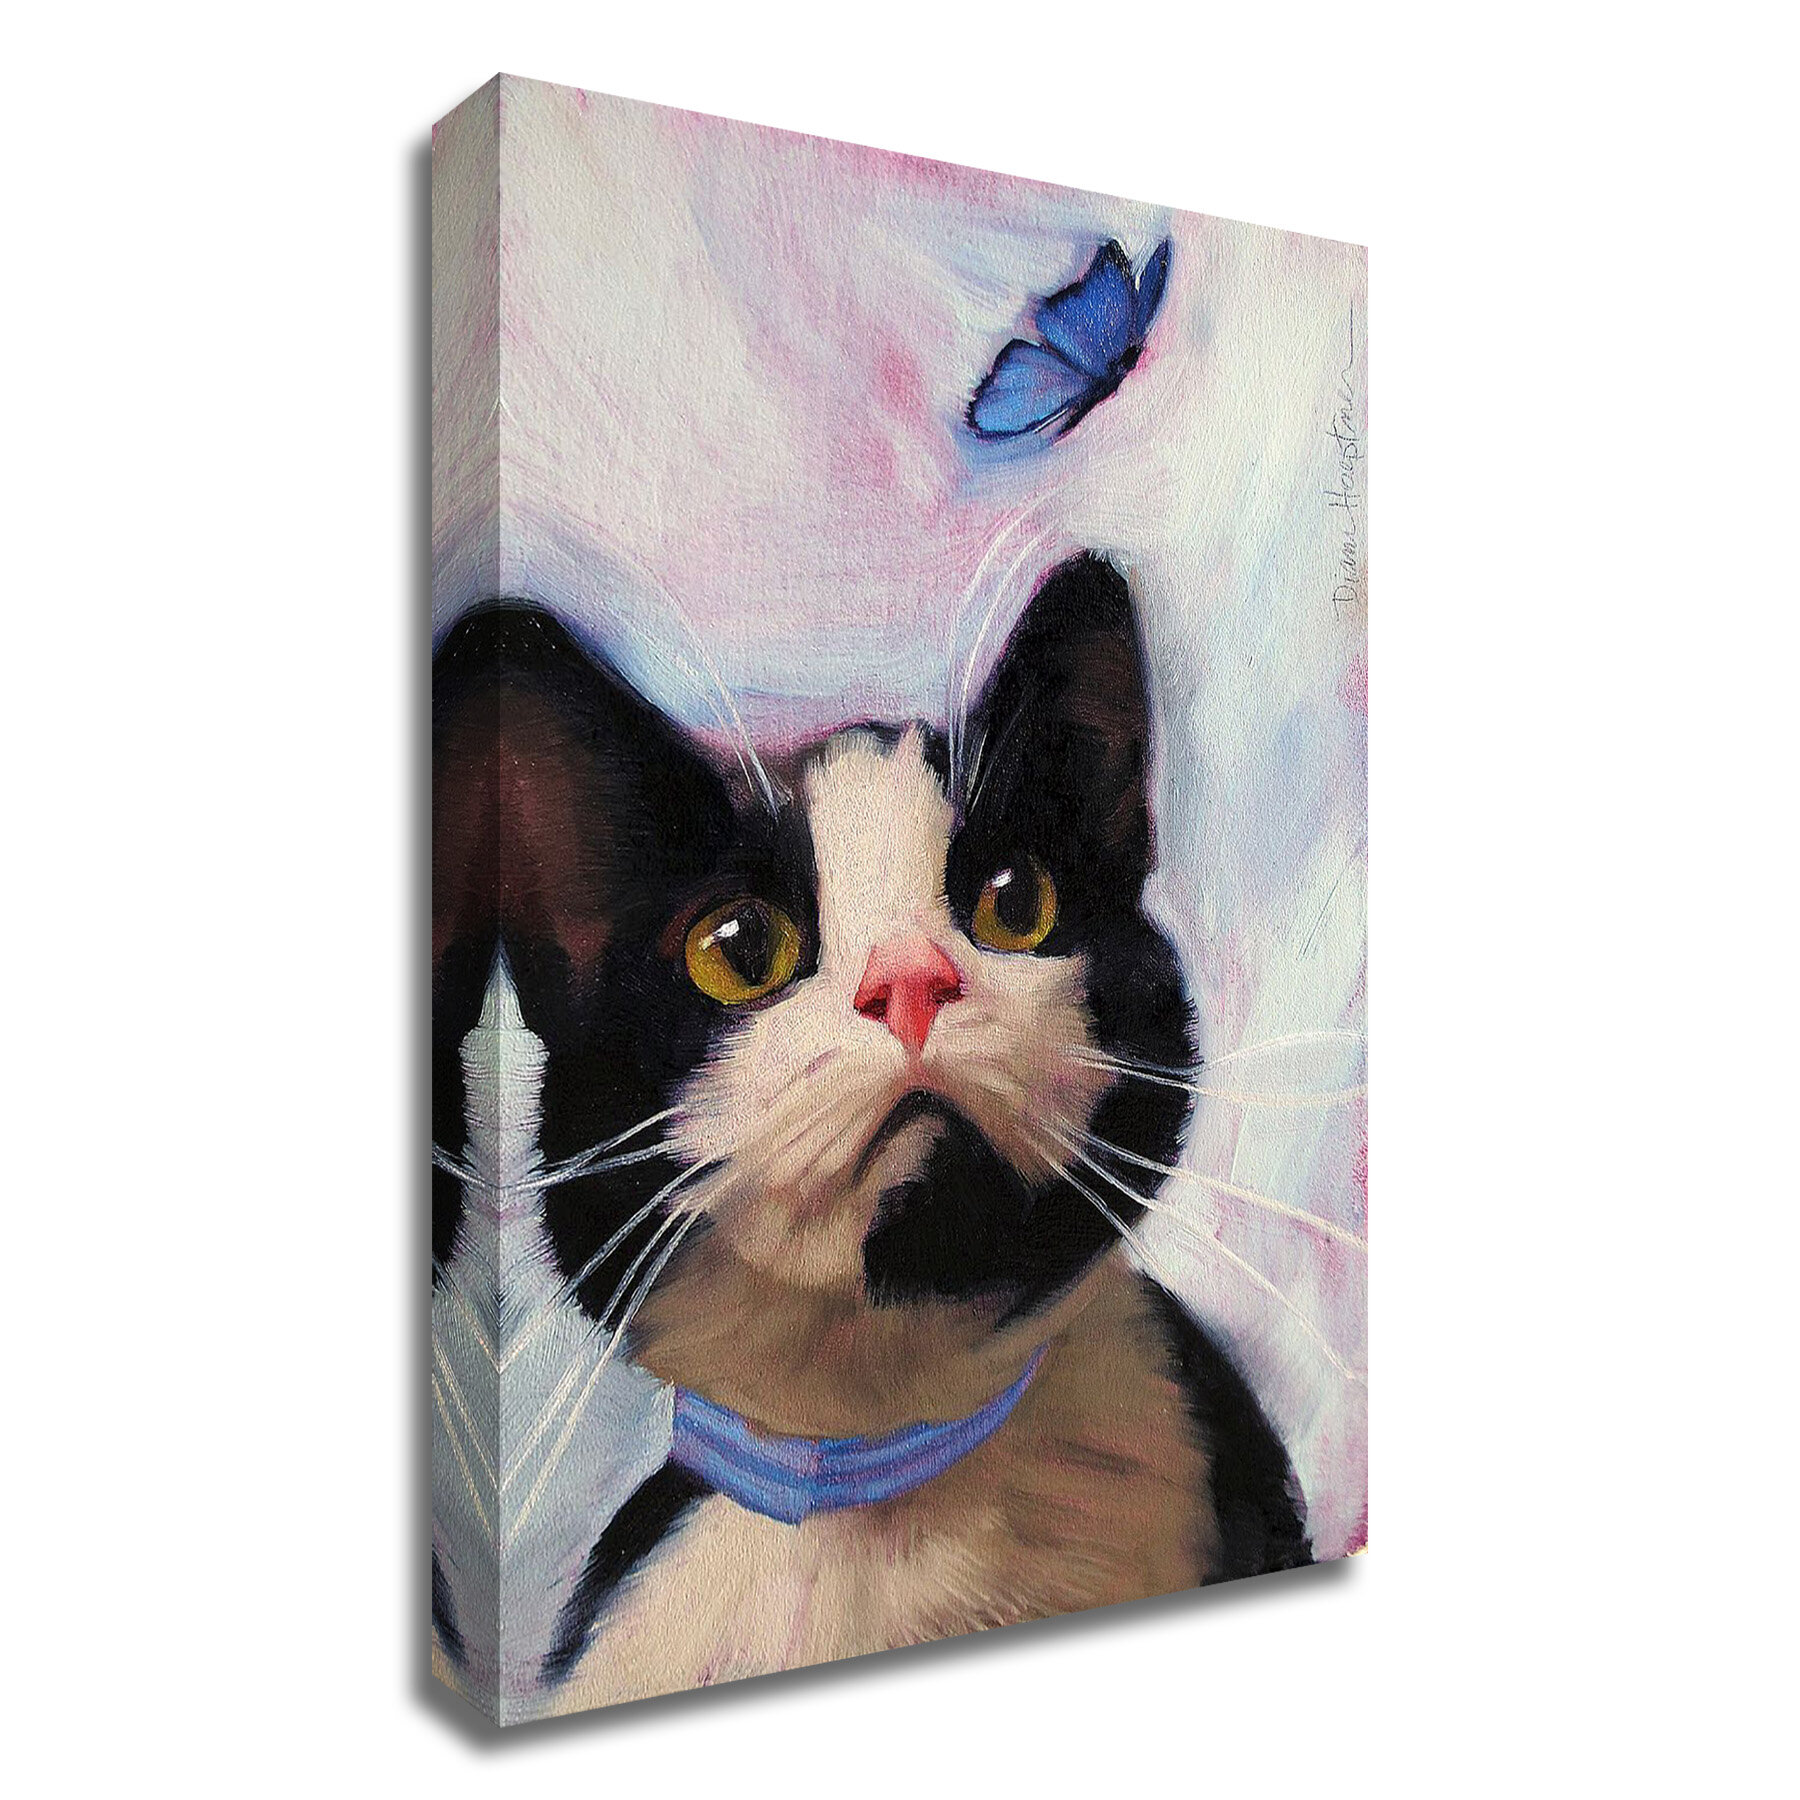 Wayfair Cat Gallery Wrapped Canvas Wall Art You Ll Love In 2021